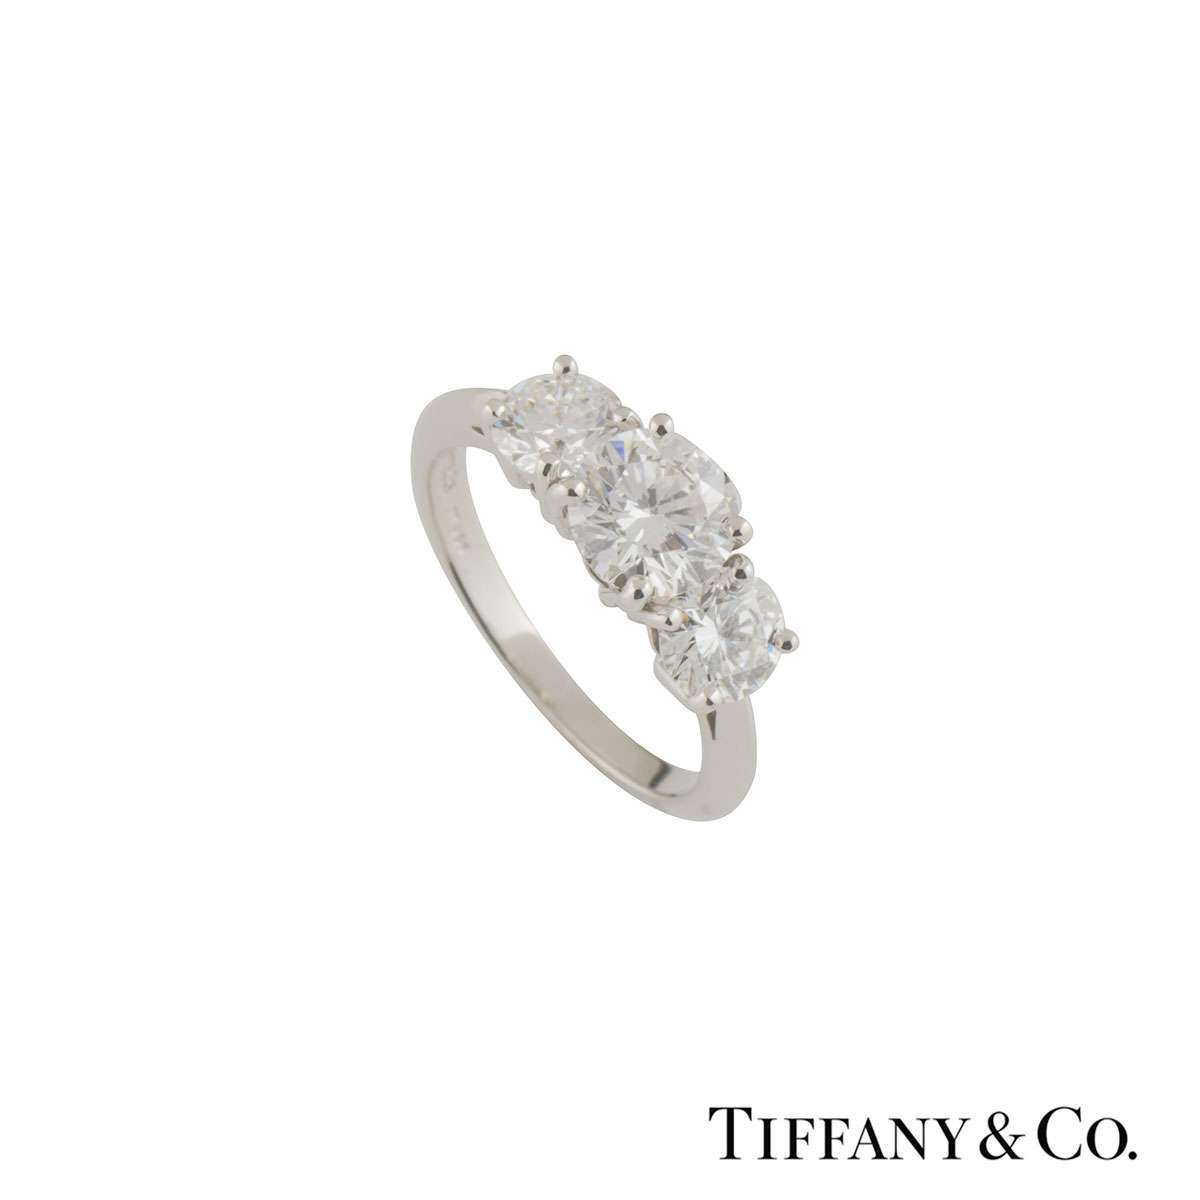 Tiffany & Co Diamond Trilogy Ring